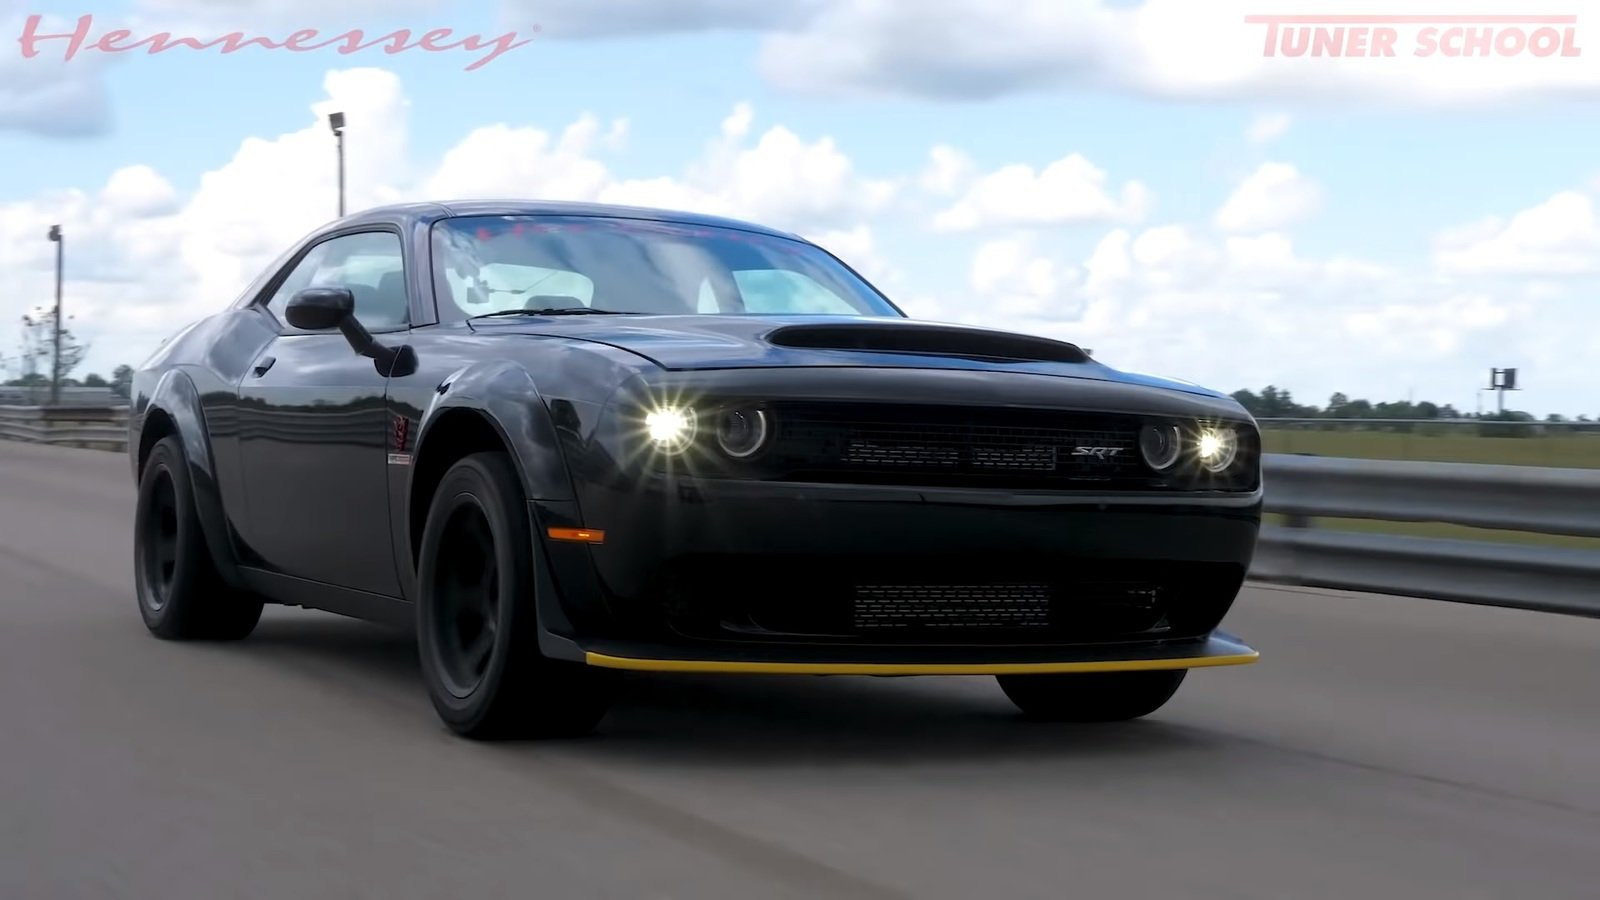 2018 Dodge Challenger >> This 1,200-Horsepower Dodge Demon Is No Joke: Video | Top ...